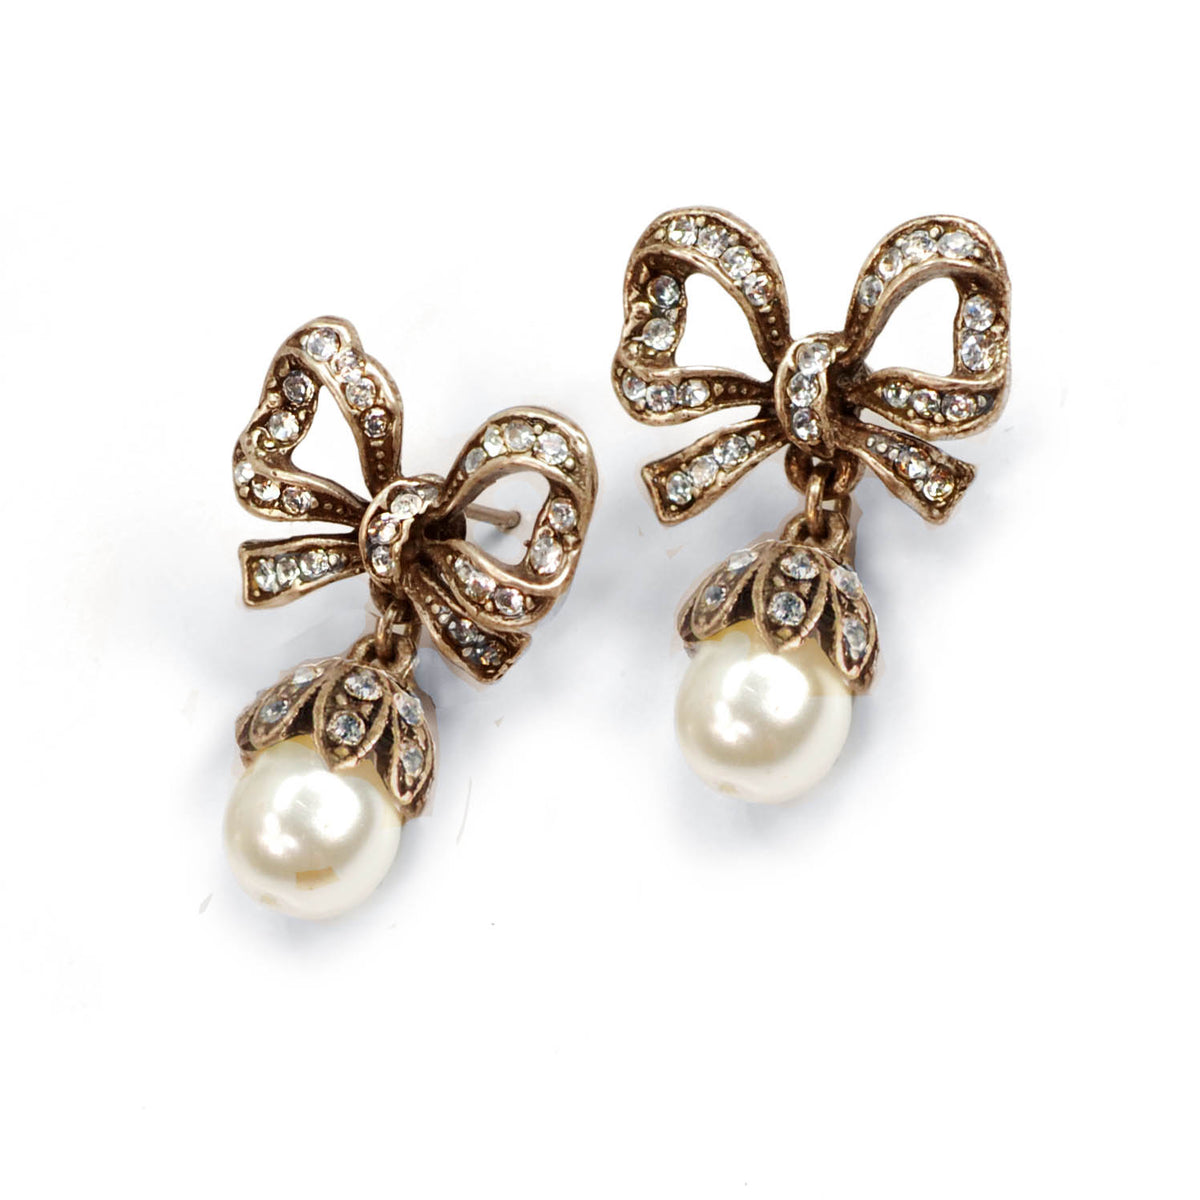 Vintage Bow Pearl Earrings